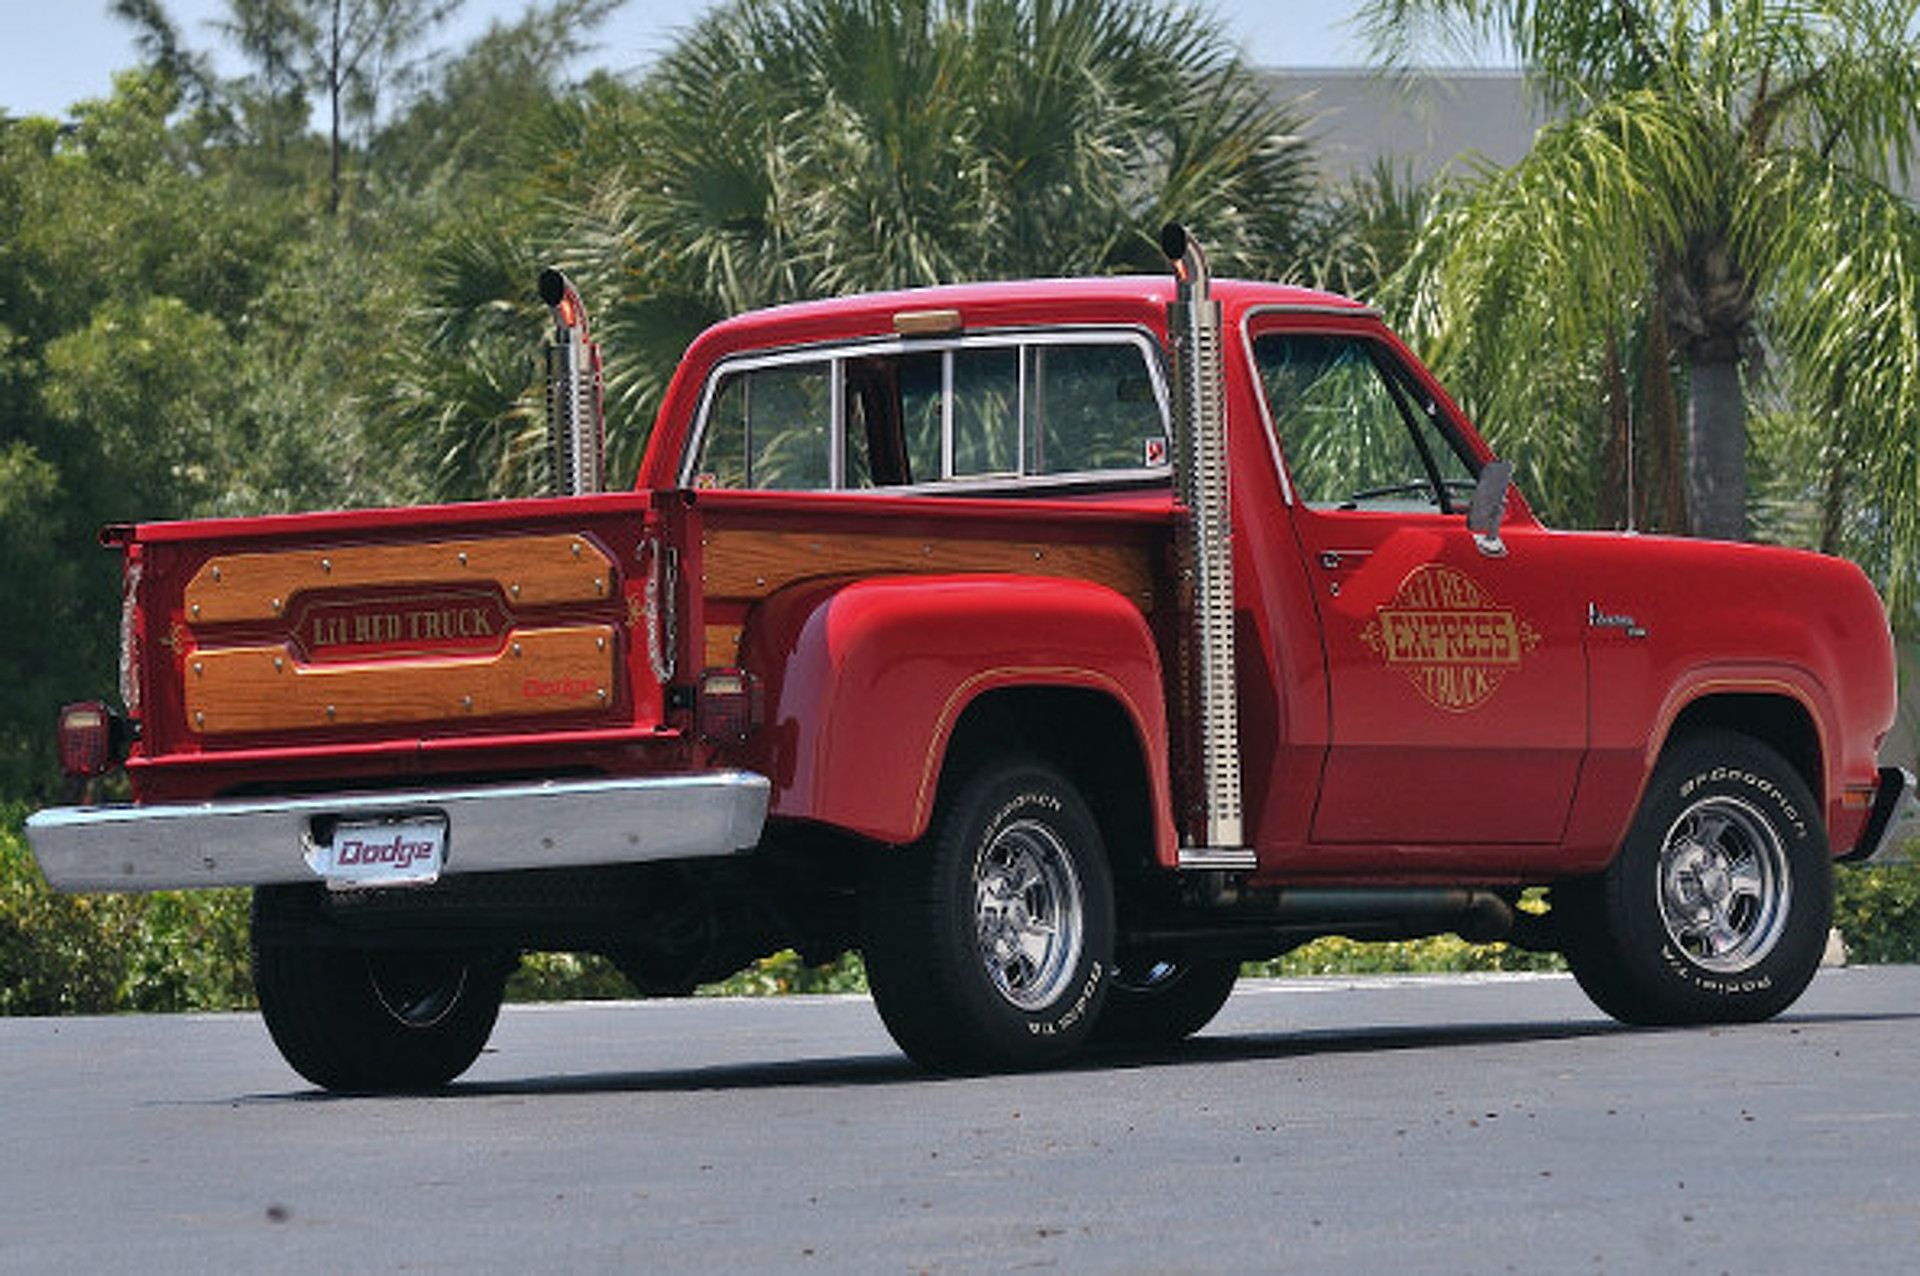 Godzilla On Four Wheels: The Story of the Li'l Red Express Truck